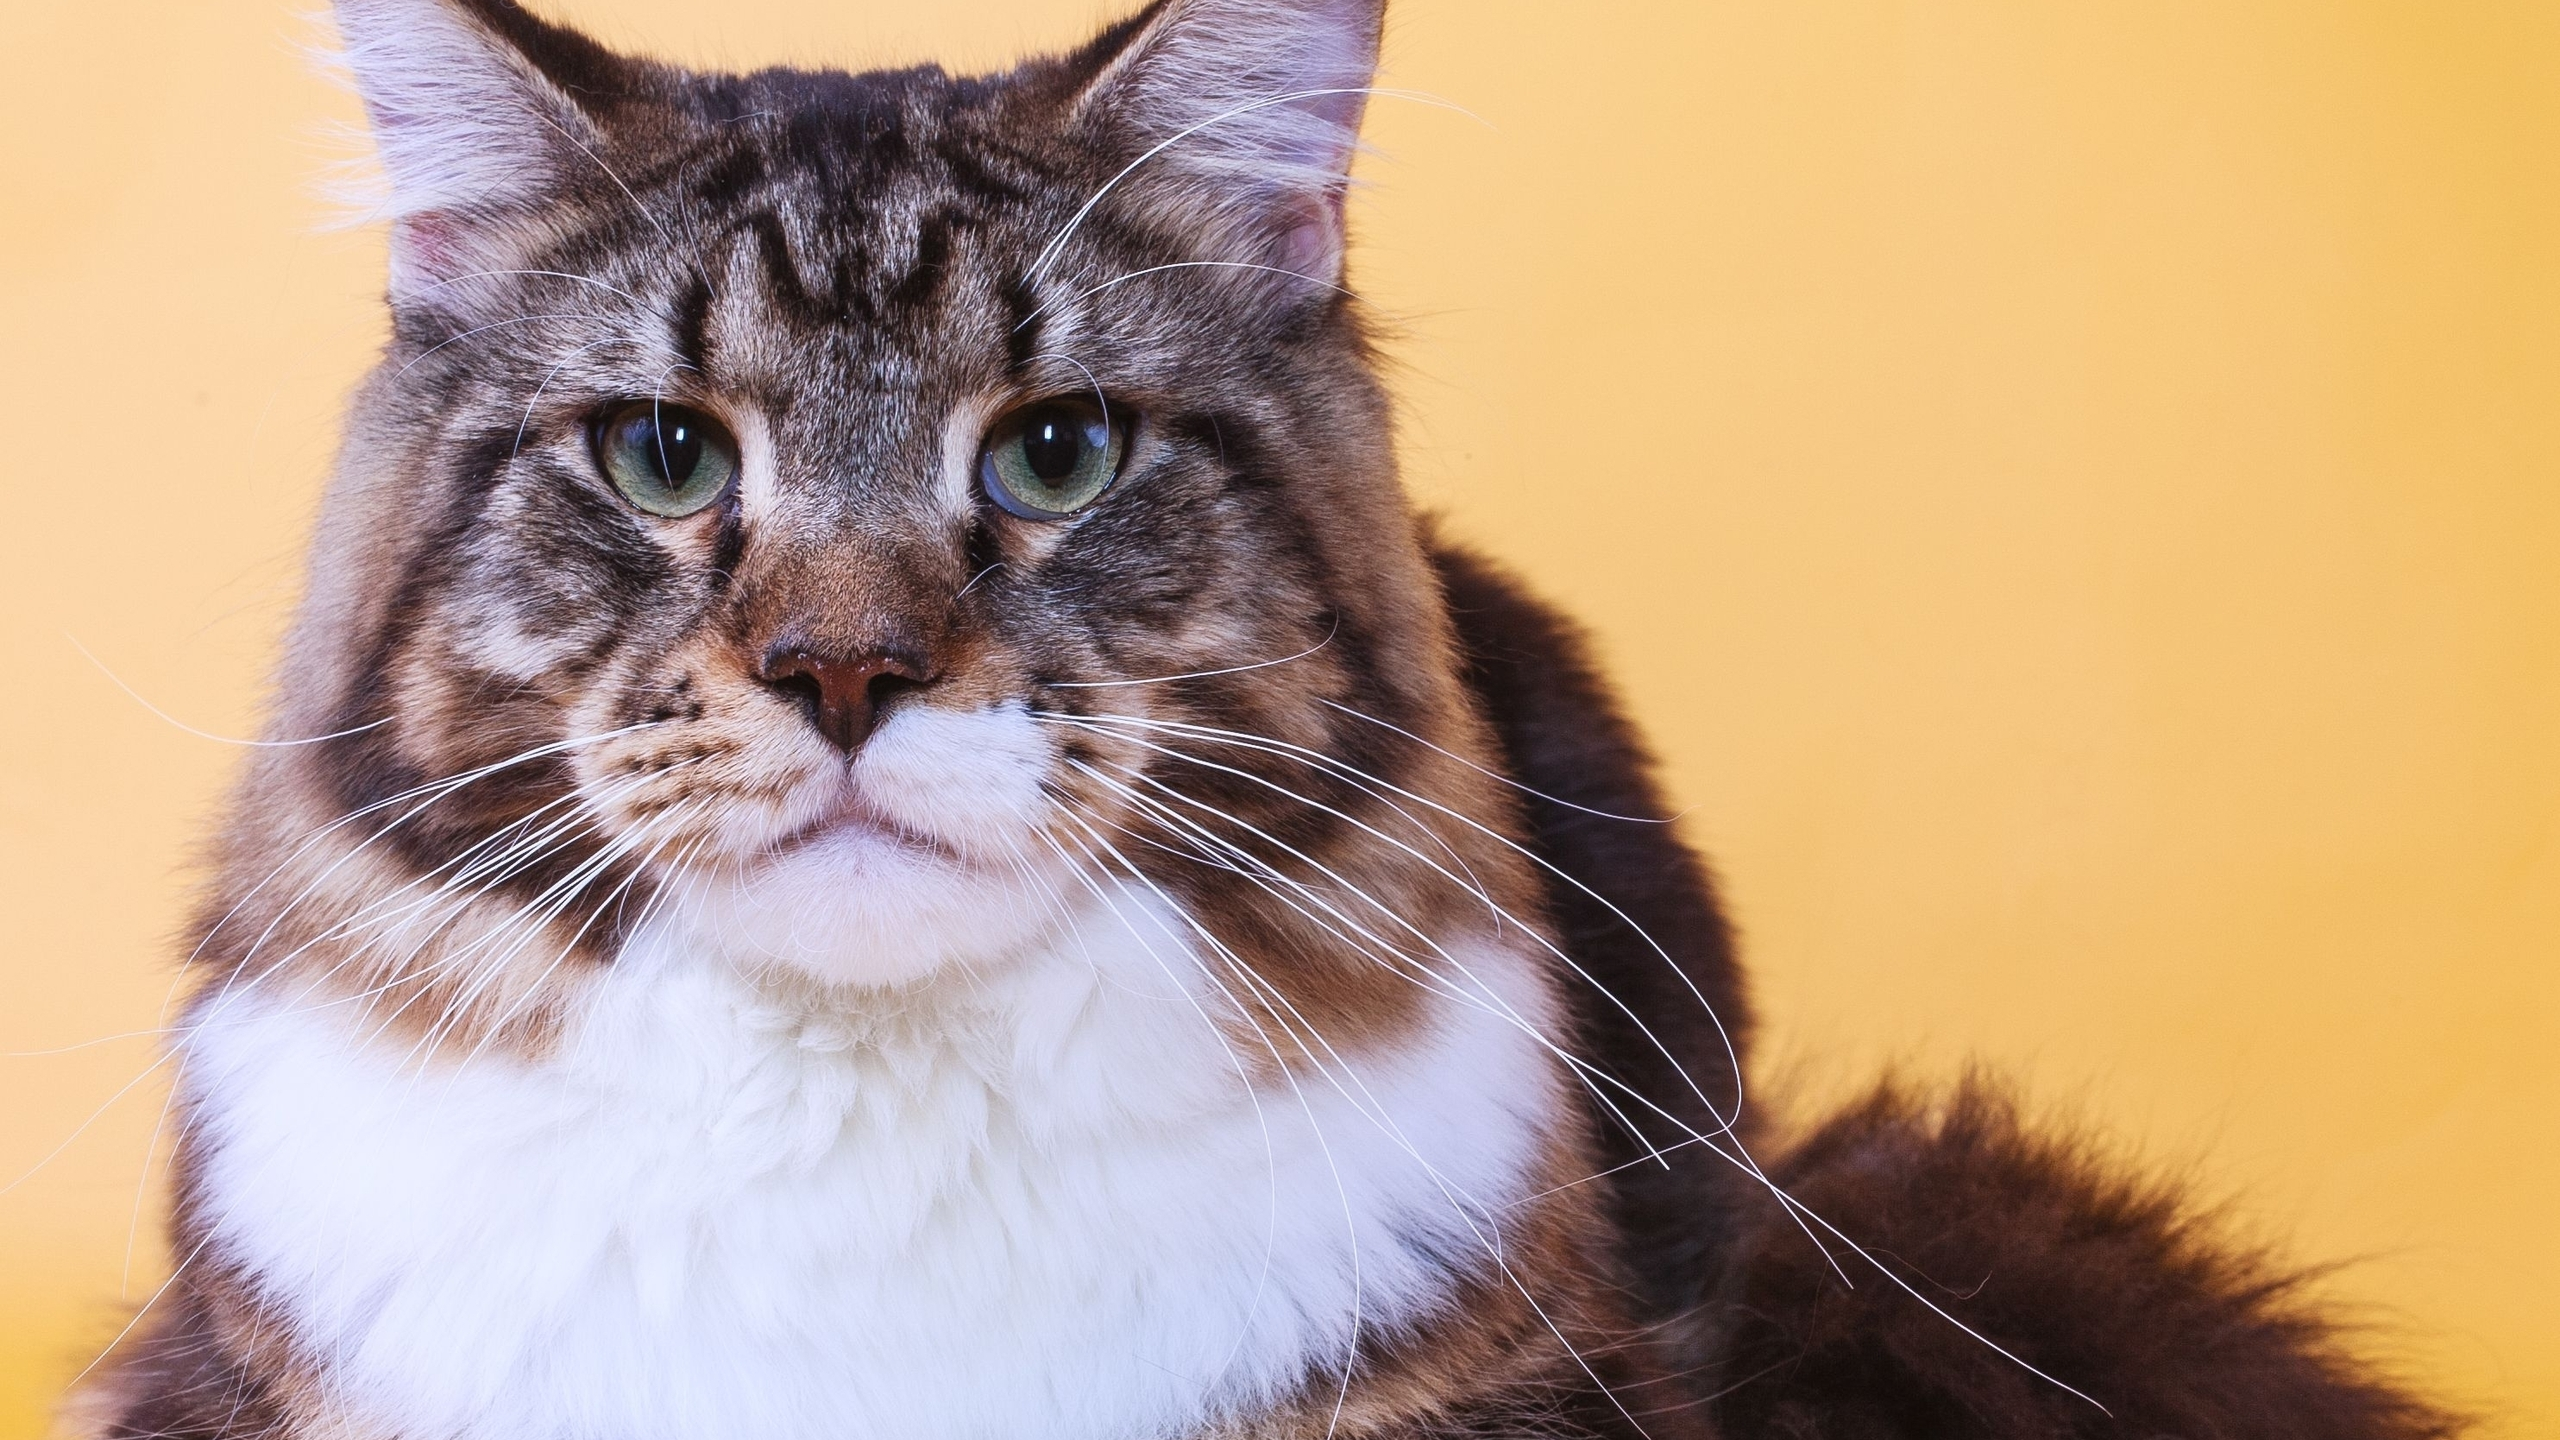 Maine Coon Cat Close Up for 2560x1440 HDTV resolution